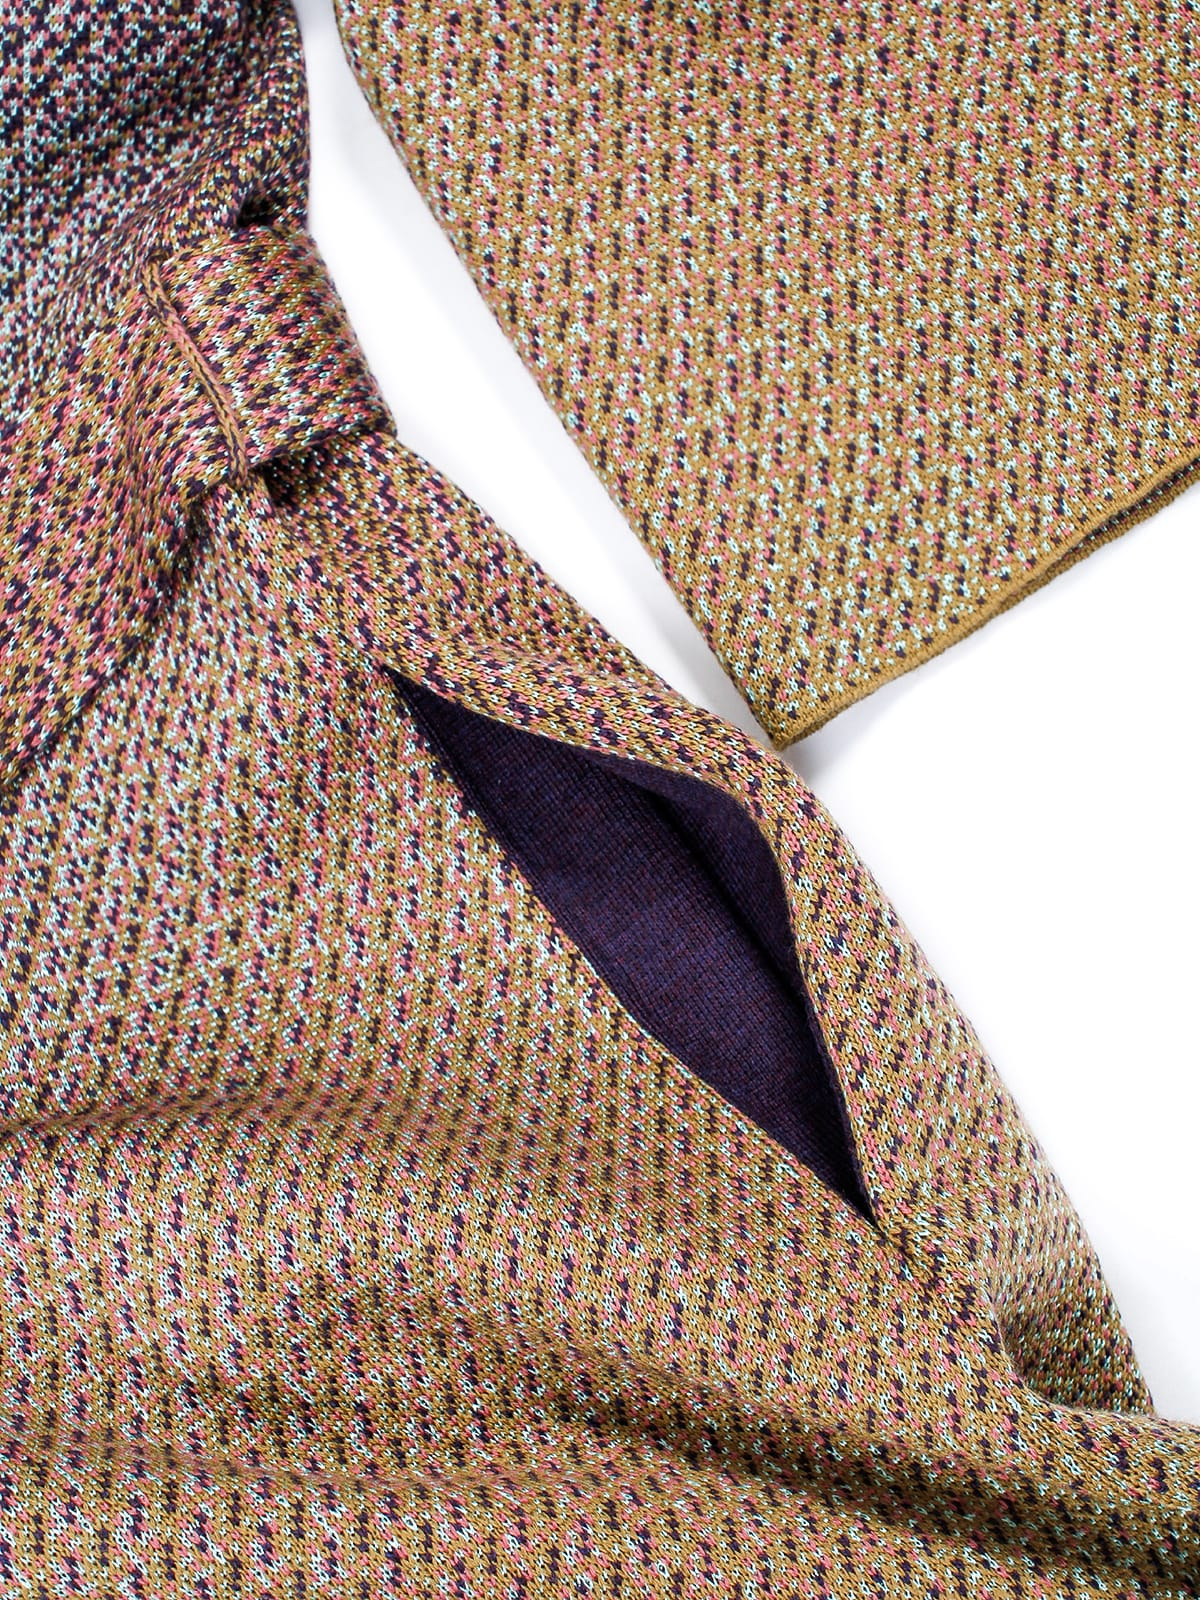 knitted Jacquard Coat_Halfmoon Caye pocket detail